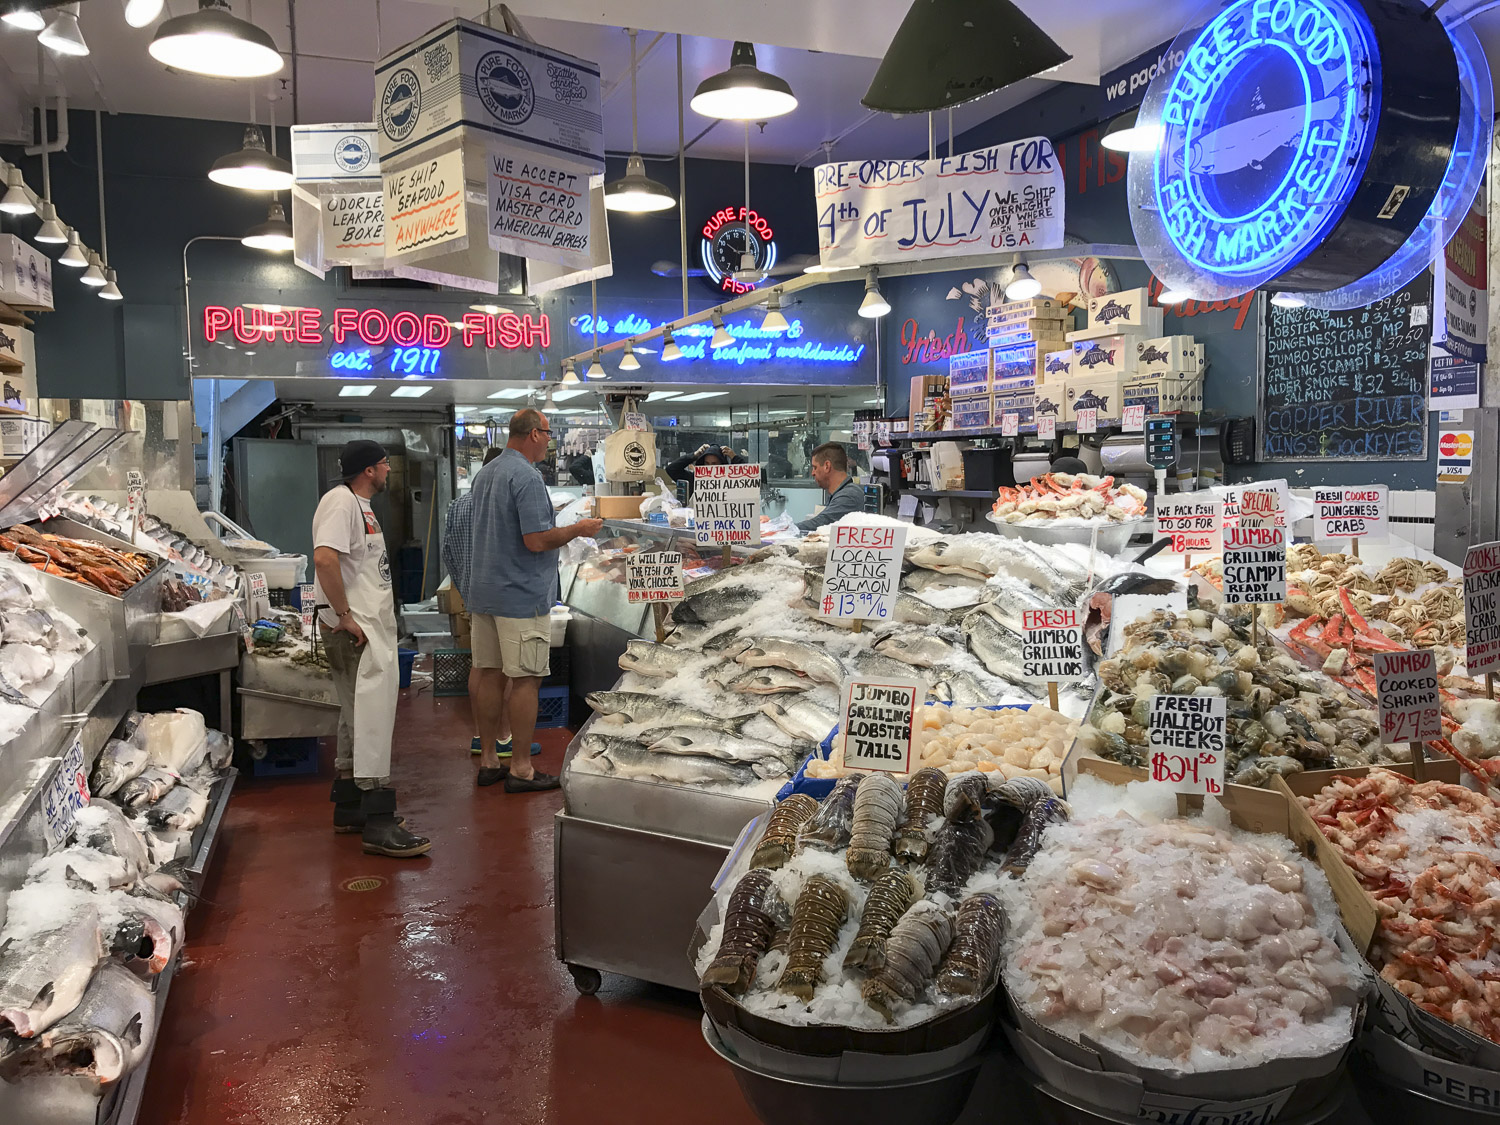 Pure Foods Fish at Pike Place Market